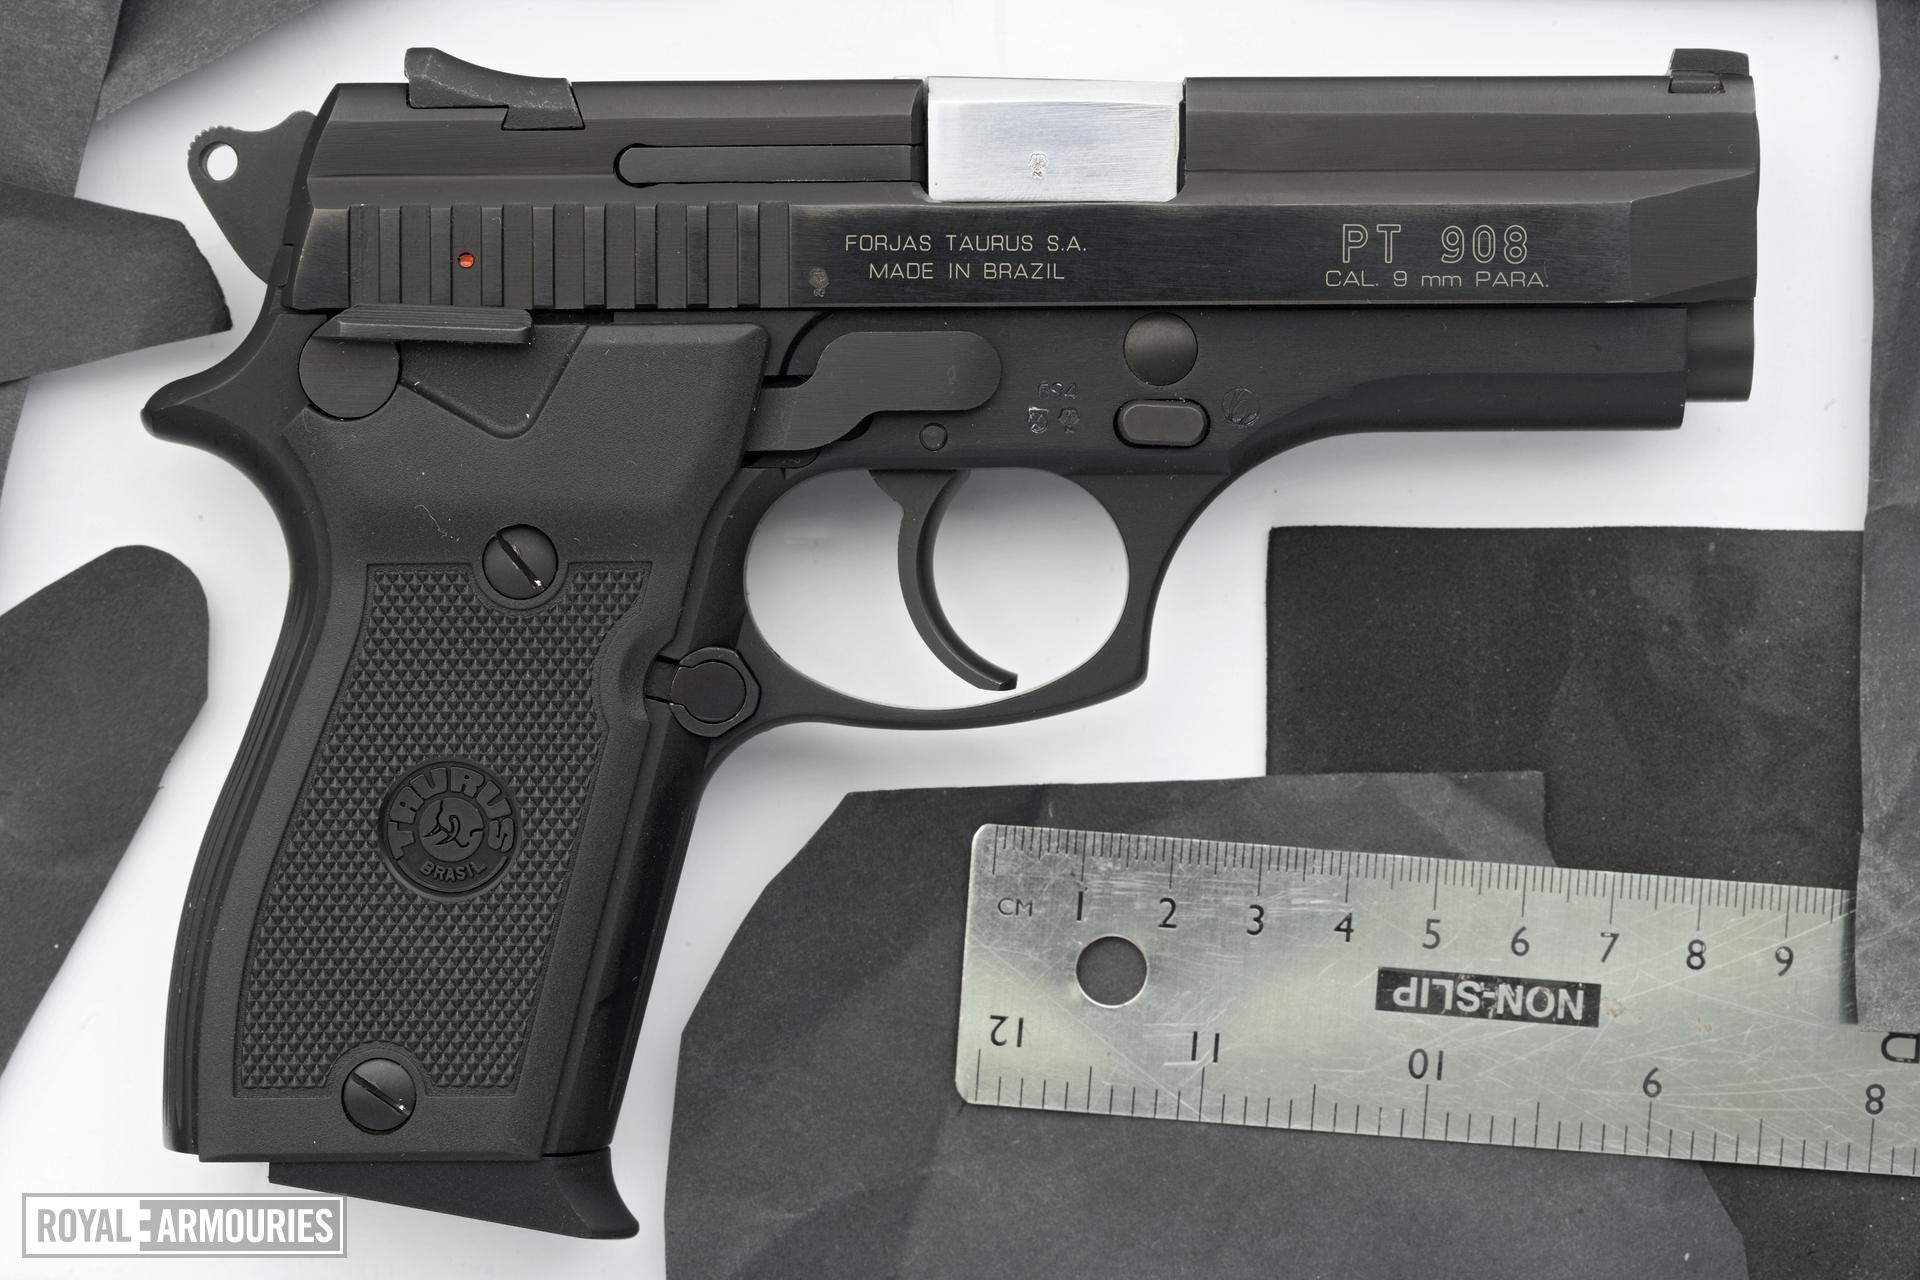 Centrefire self-loading pistol - Taurus Model PT908